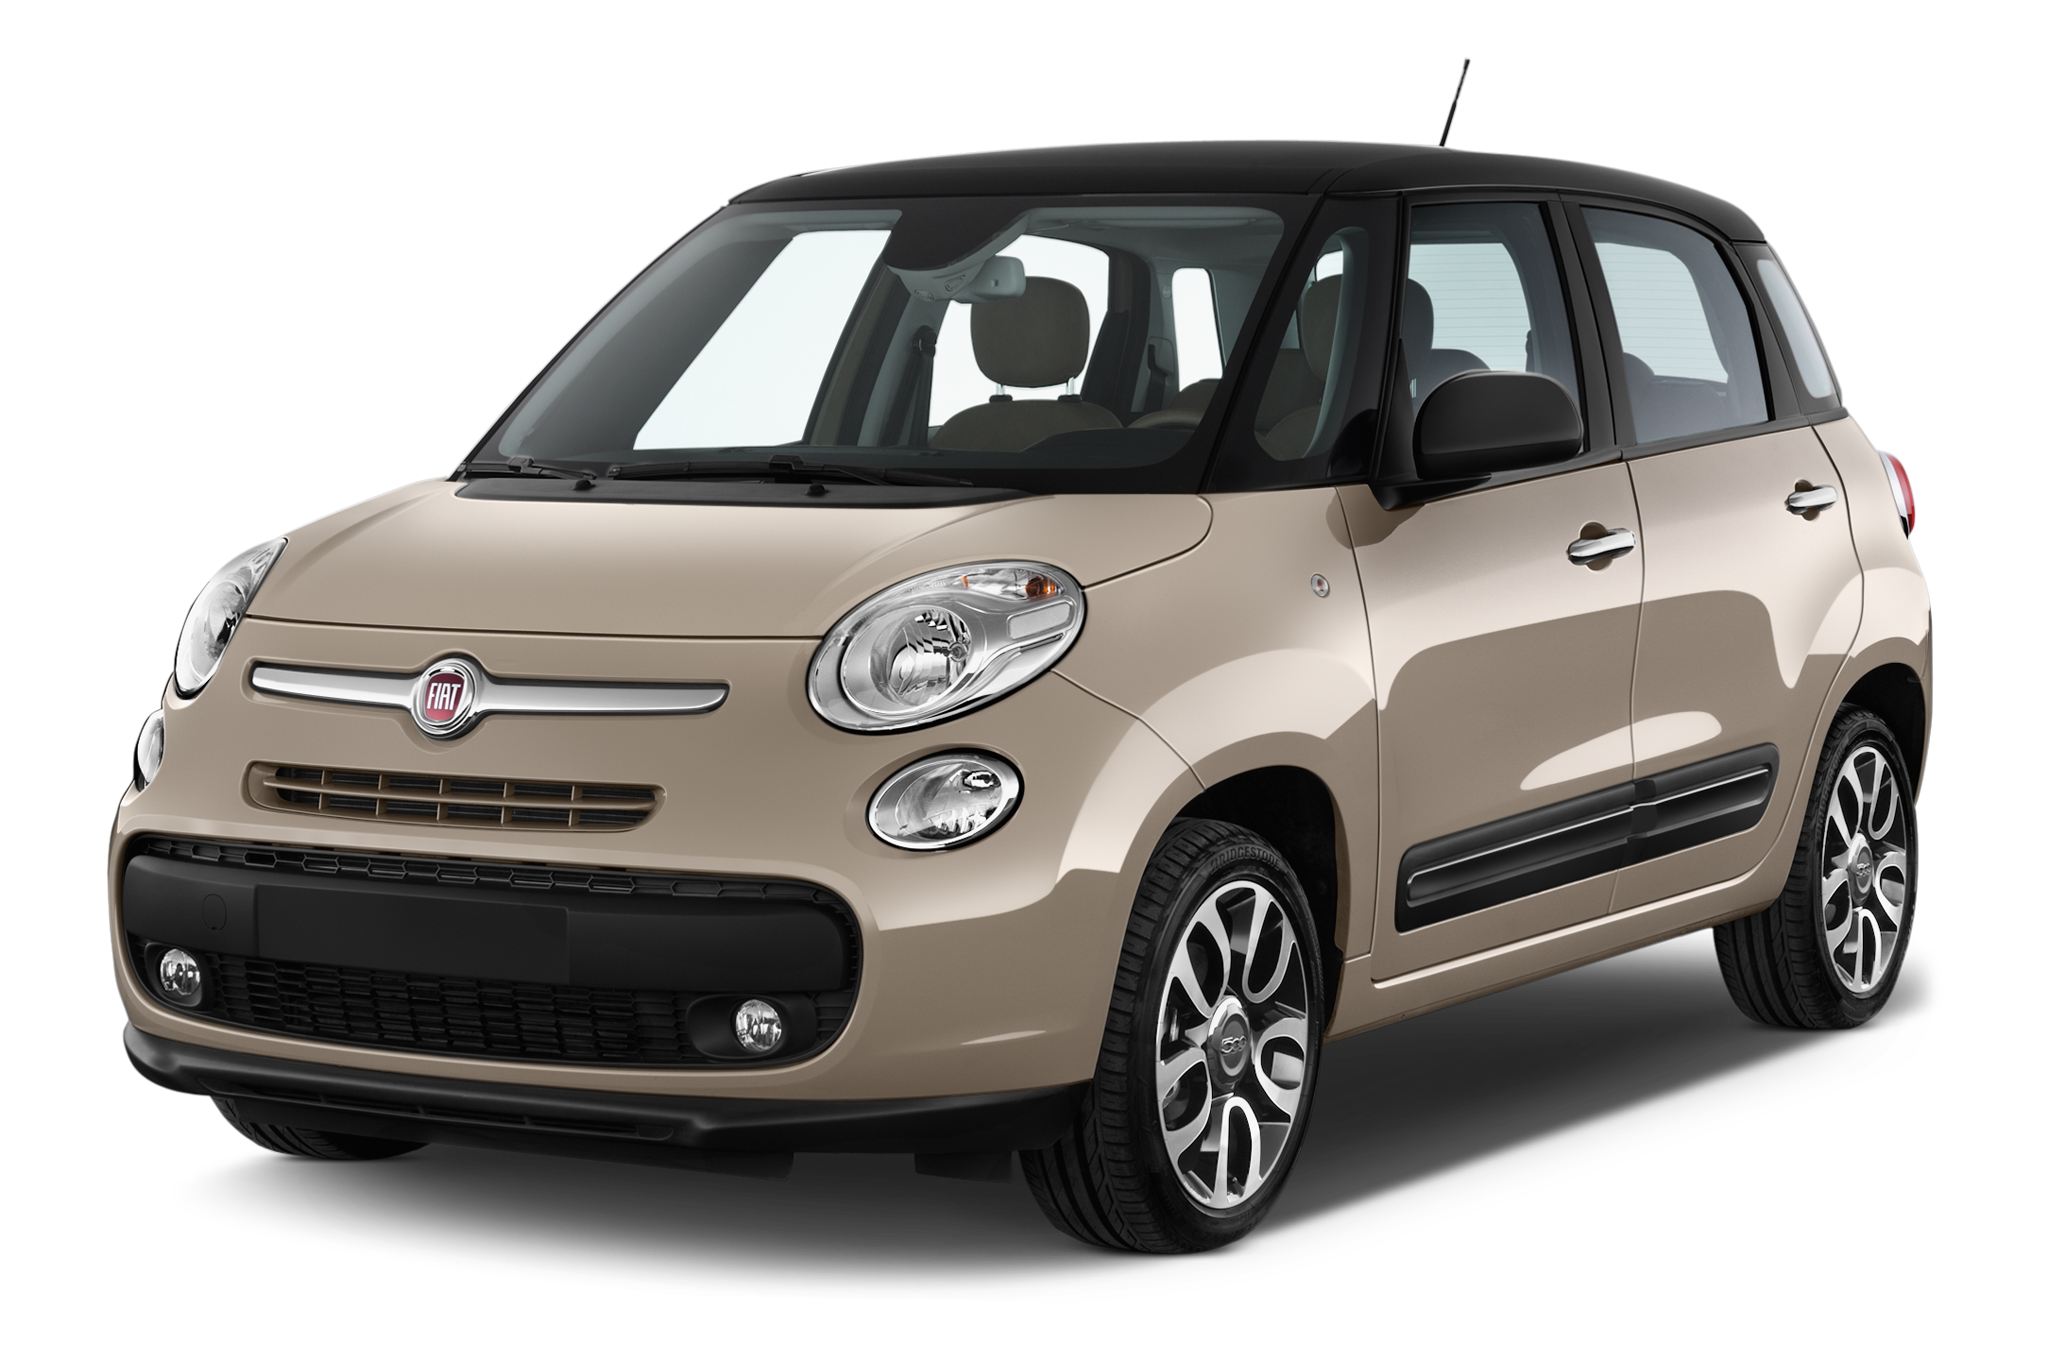 Fiat 2015 reviews